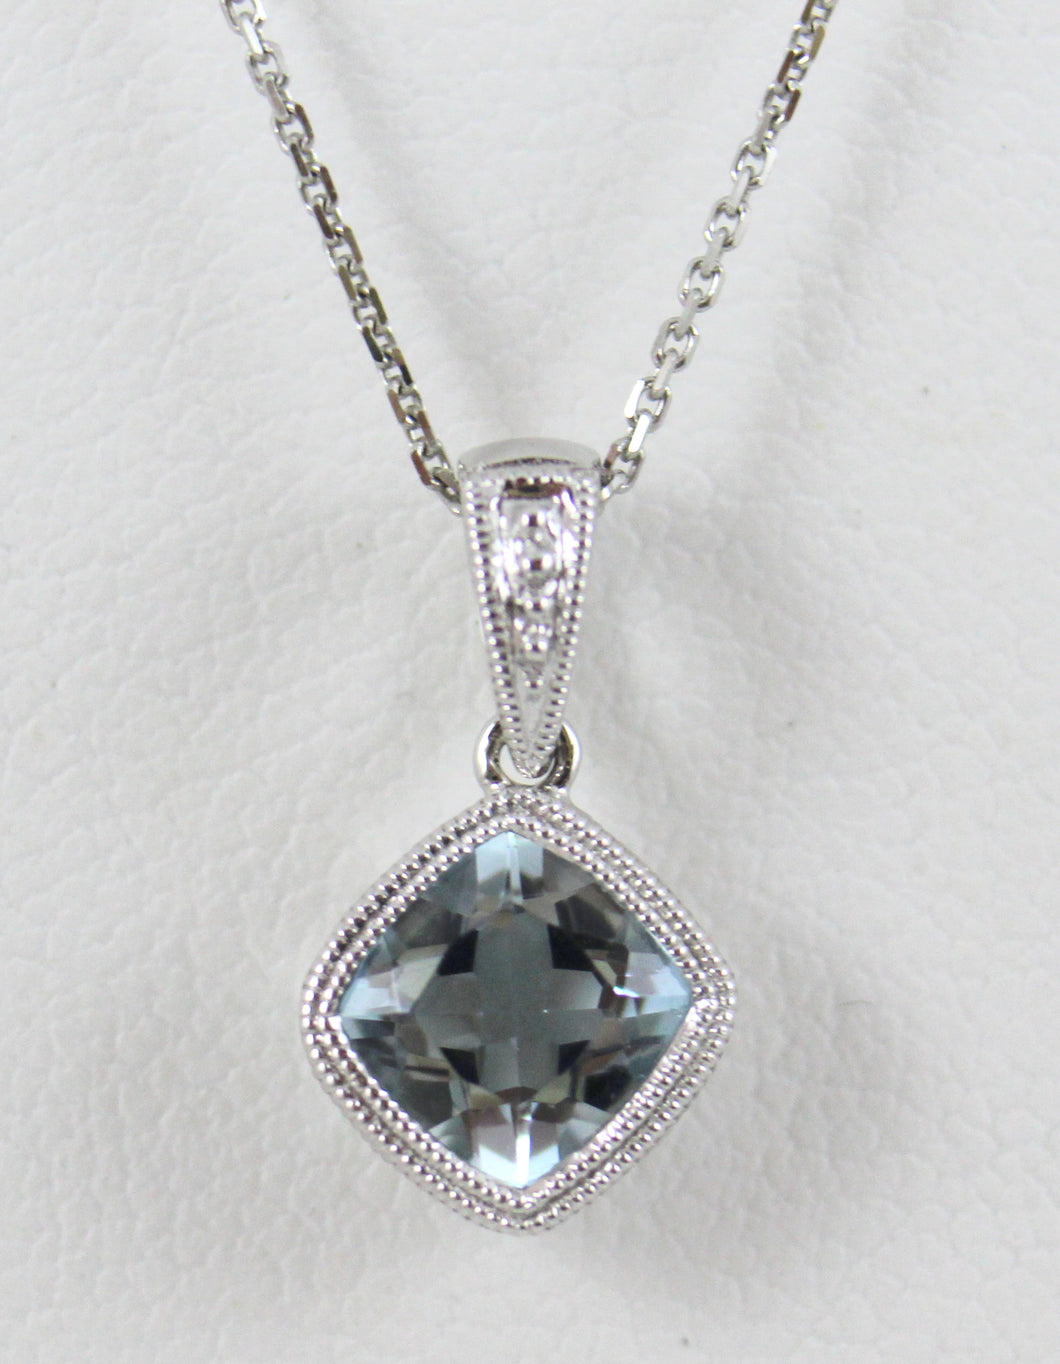 14K White Gold Aqua Pendant on and 18 inch Chain with Lobster Clasp.  One Cushion Cut Aqua=.81ct.